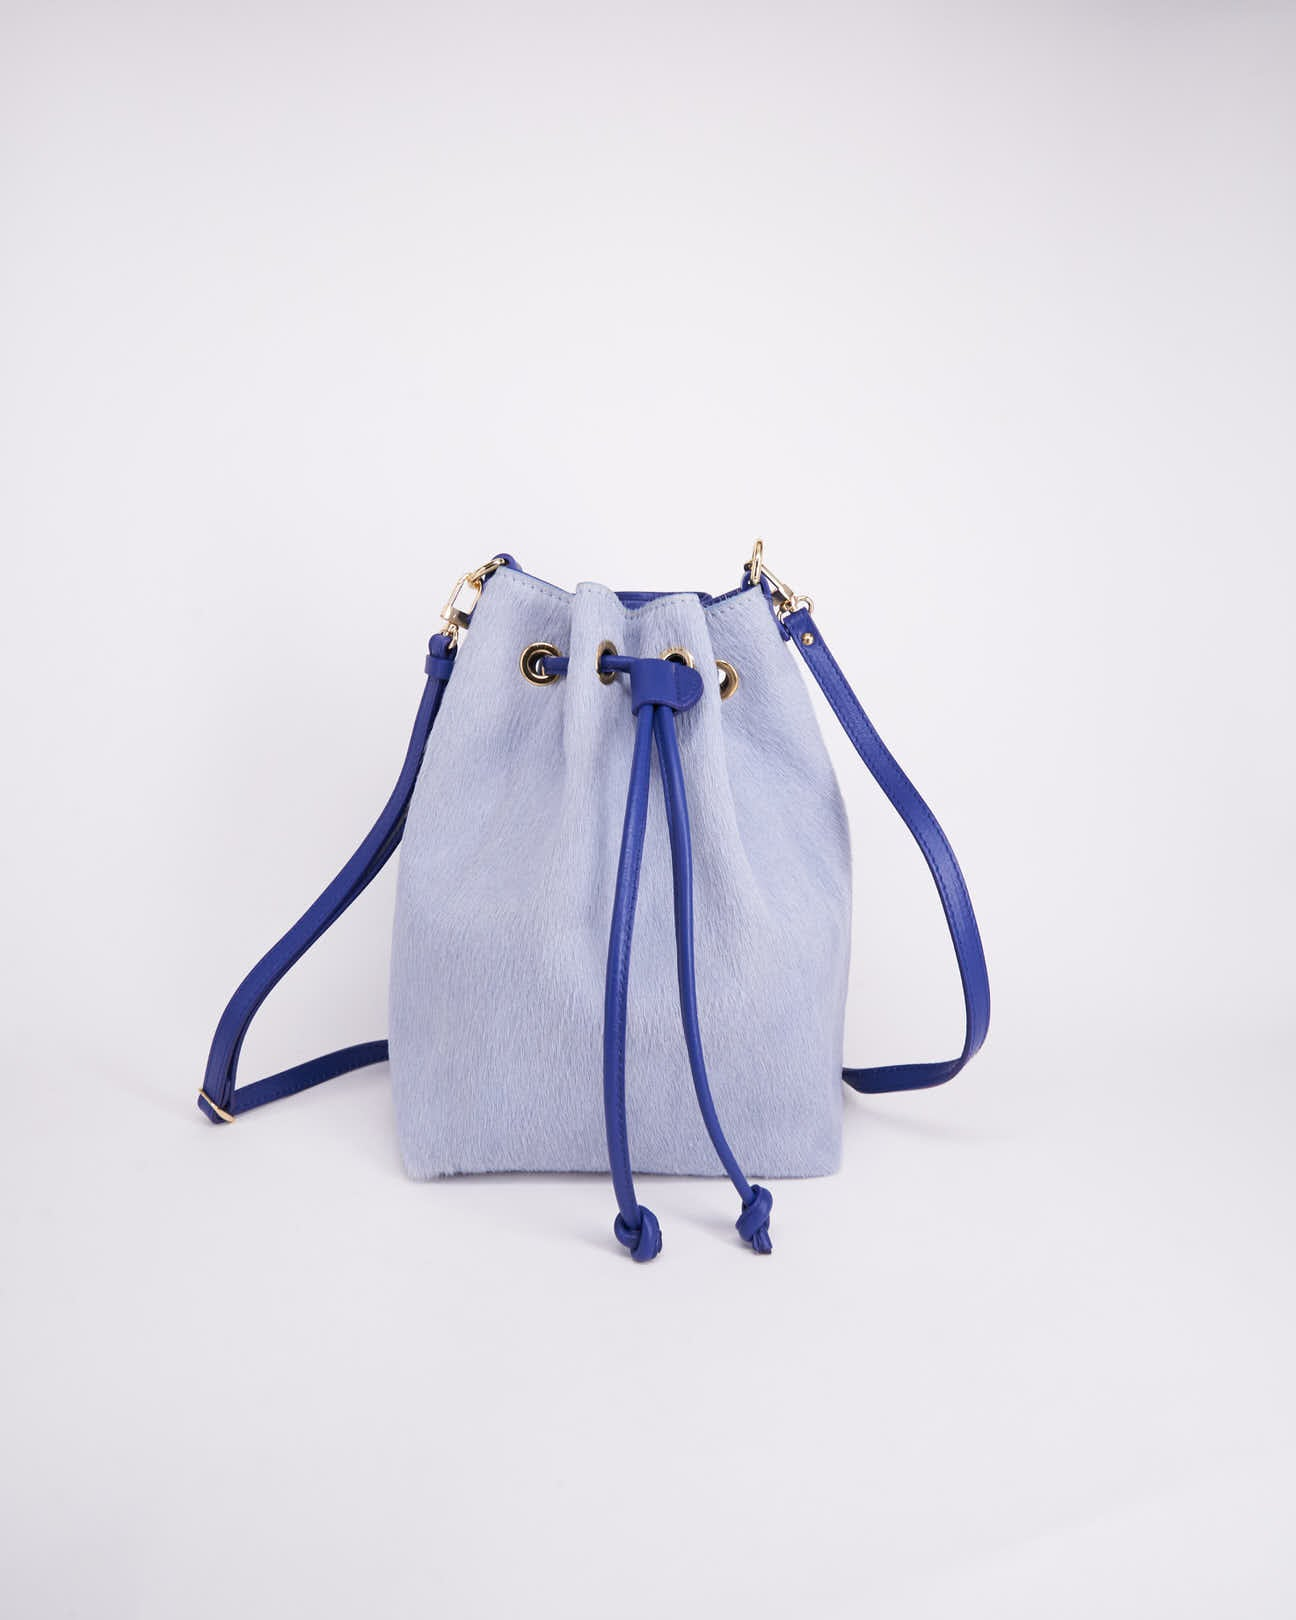 Bag-Nuo Sac-Nuovum-Leather-Blue-localdesigners-Barcelona-Nuovum-Handmade-longstrap